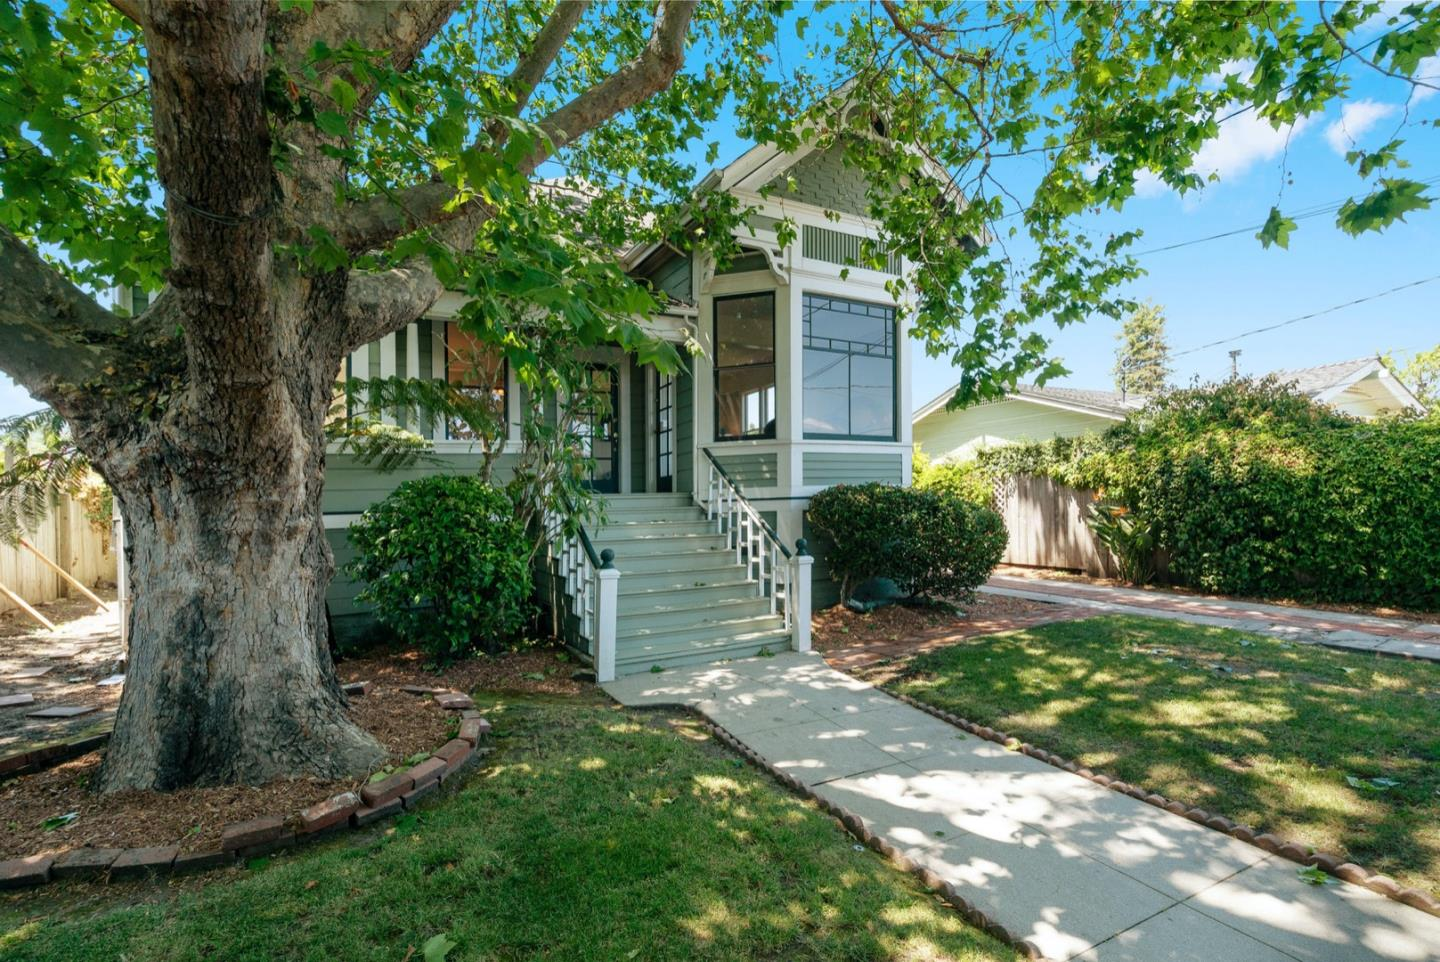 Historic charm abounds in this beautifully restored1900 Victorian, 4 bedroom, 2 bath vintage home in the heart of  Santa Cruz's desirable Westside. Set back from the street with privacy fence and landscaping and watched over by the giant Sycamore tree. The front entry porch leads` to the inviting grand foyer. Original Wood flooring, lighting, woodwork, architectural elements, stained and leaded glass and fixturesadorn the home throughout. The home has an excellent floor plan that is perfect for modern living. Lovely living room and parlor, charming sun room, the great kitchen and family area are all spacious and inviting. Downstairs master with sitting room. Upstairs are 3 bedrooms and full bath. Homes like this don't come around often. Don't miss the opportunity to own this fabulous Victorian. Visit the 3D and Virtual Tour at 1014KingSt.com. Please follow the guidelines listed on the Posted Rules for Entry Form at https://1drv.ms/b/s!AplLDFHAD0WBgbNJmt5bS_G7pBBY4A?e=VWP9Ct